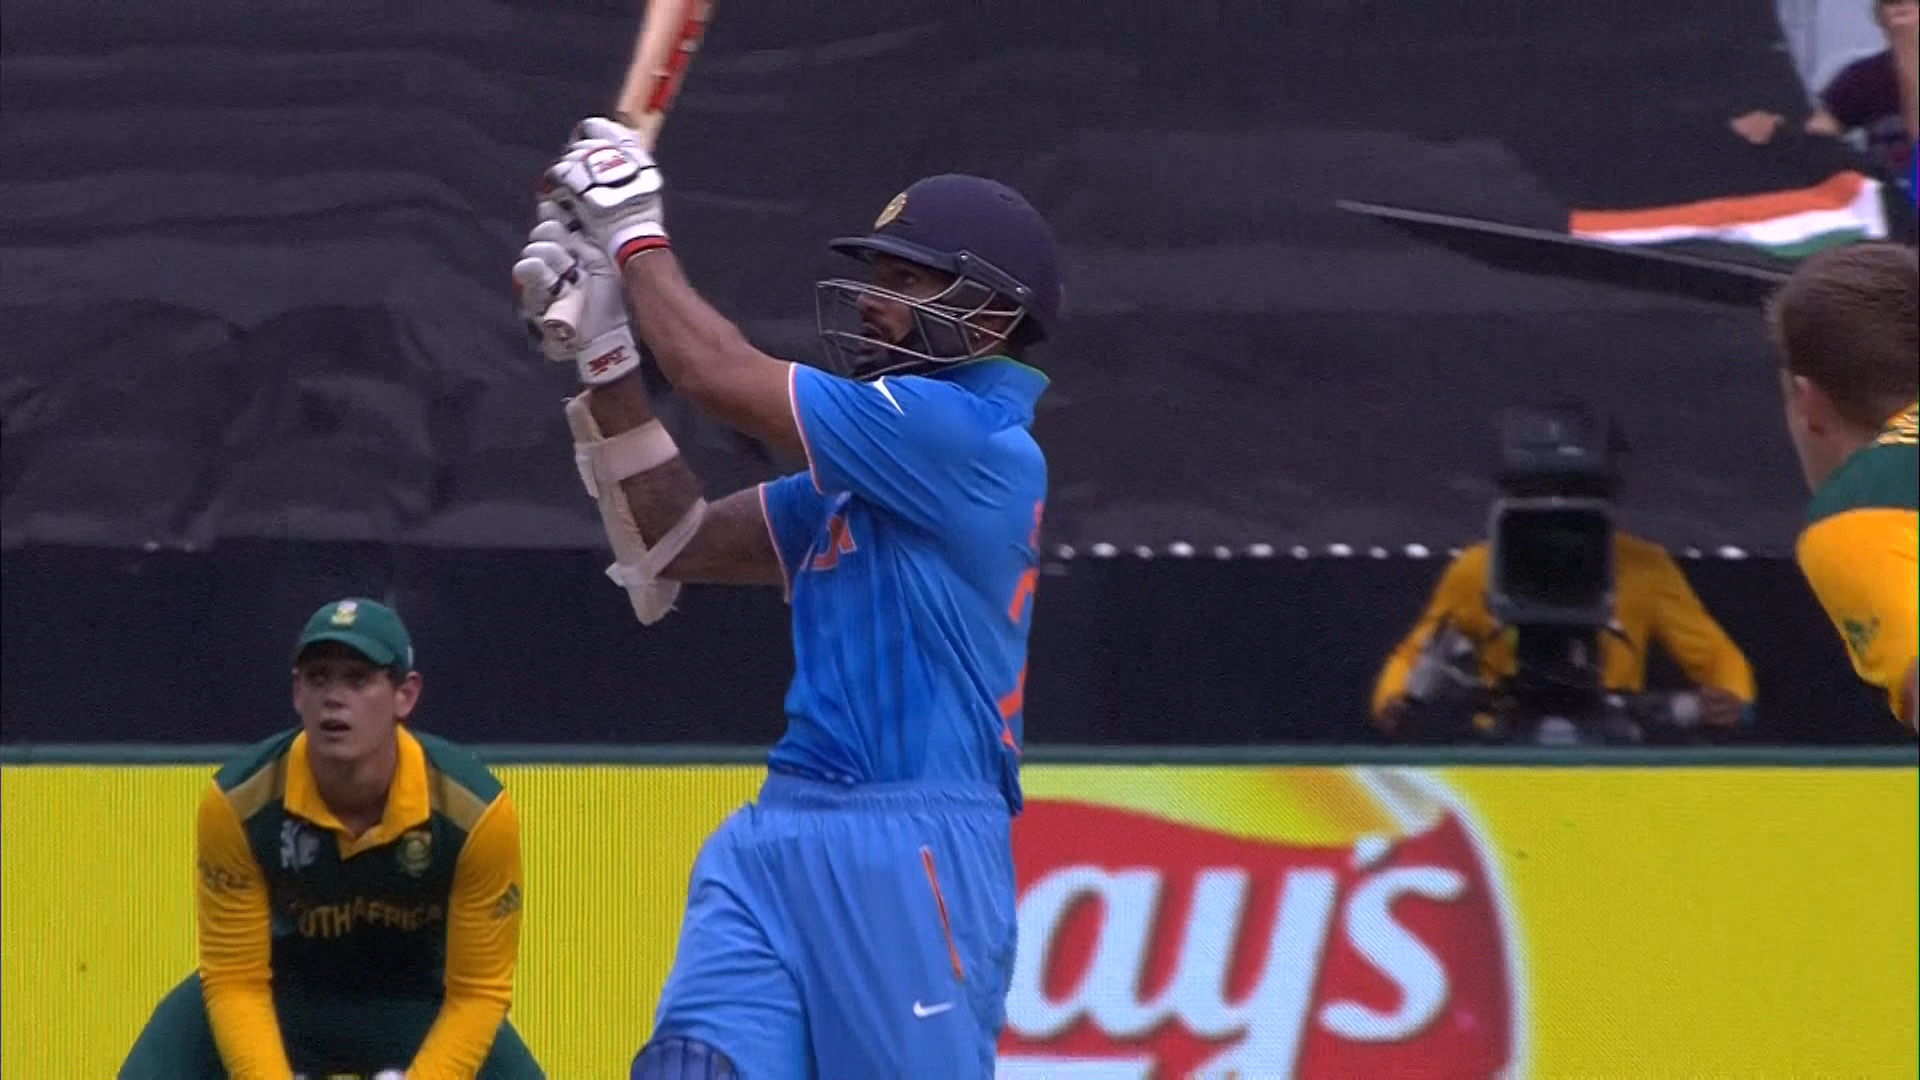 India v South Africa Match Highlights at CWC15